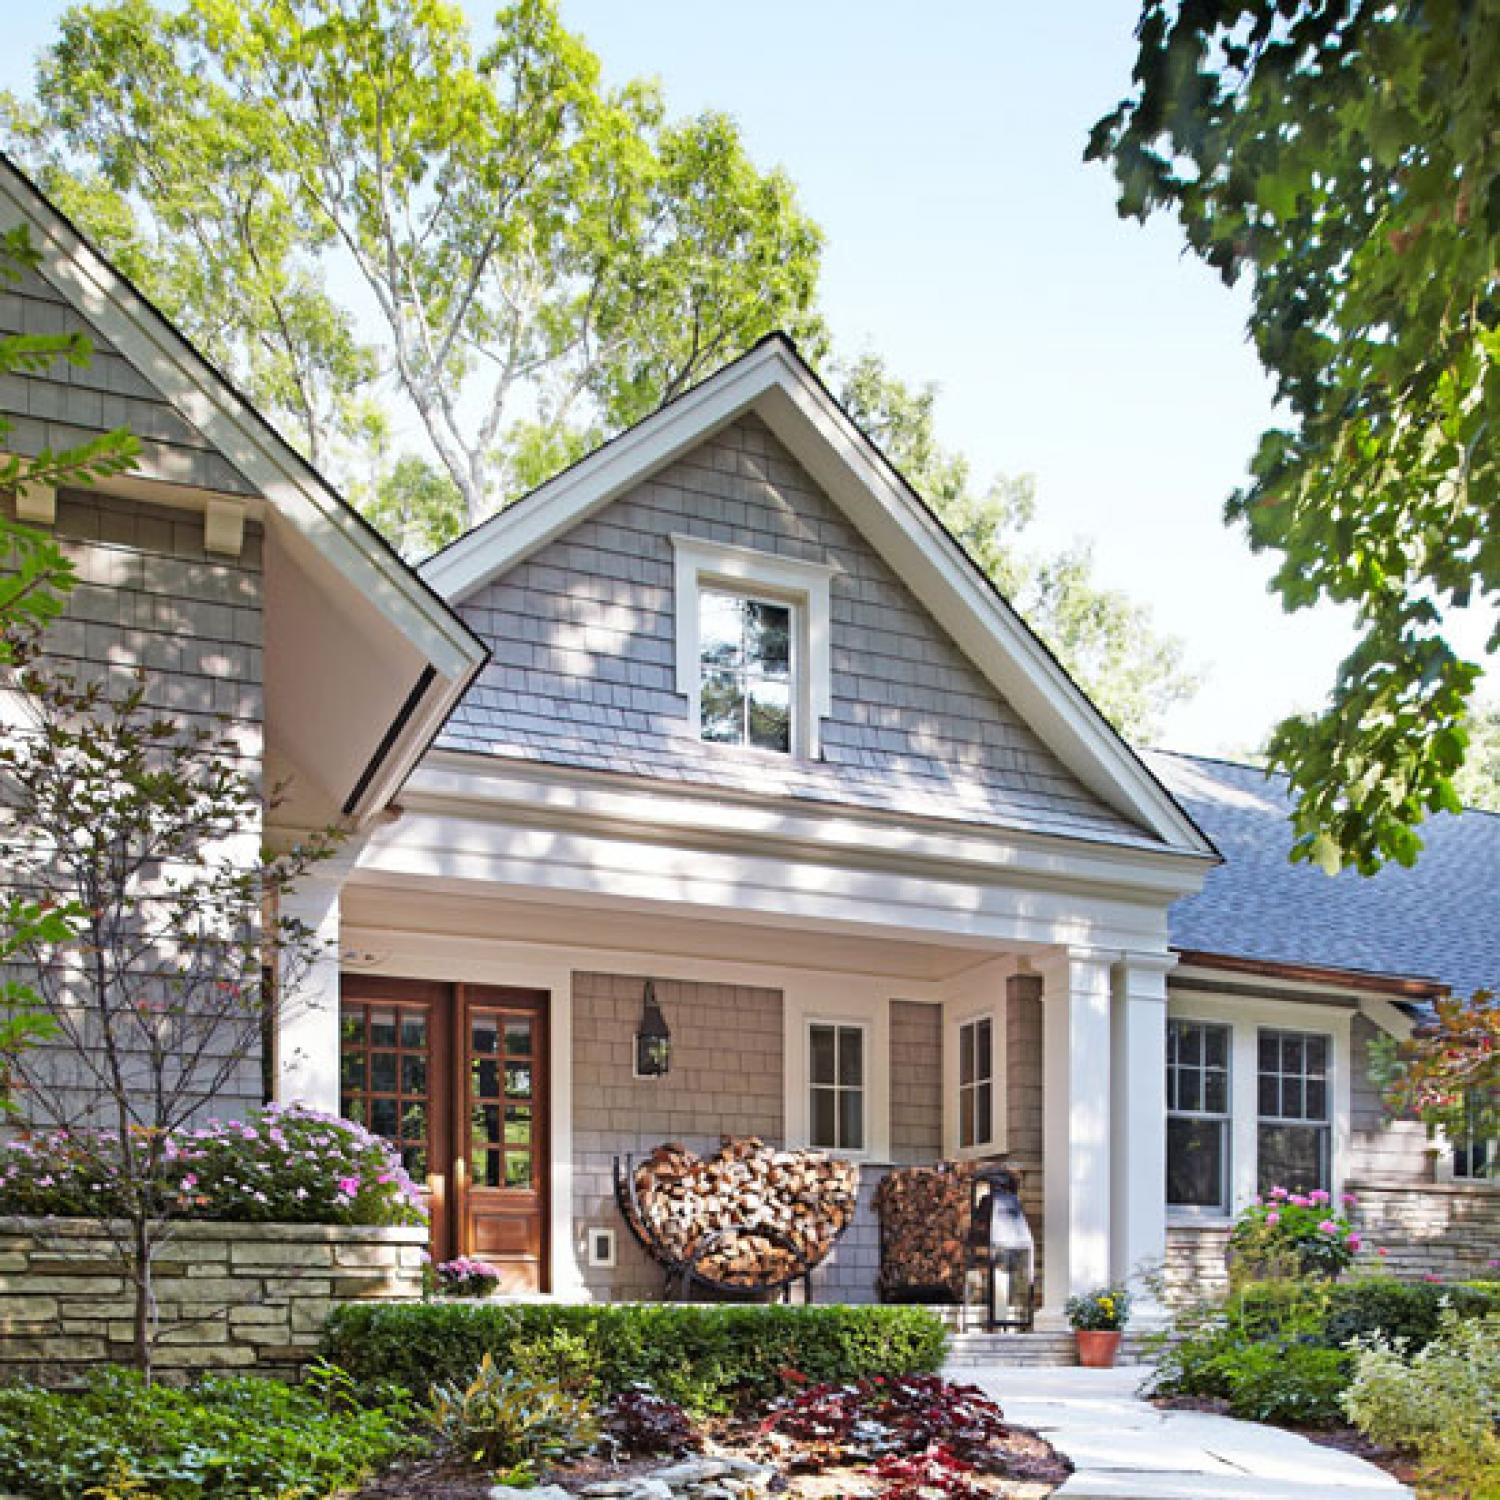 Ranch Home Updates Before and After: Remodeled Ranch House